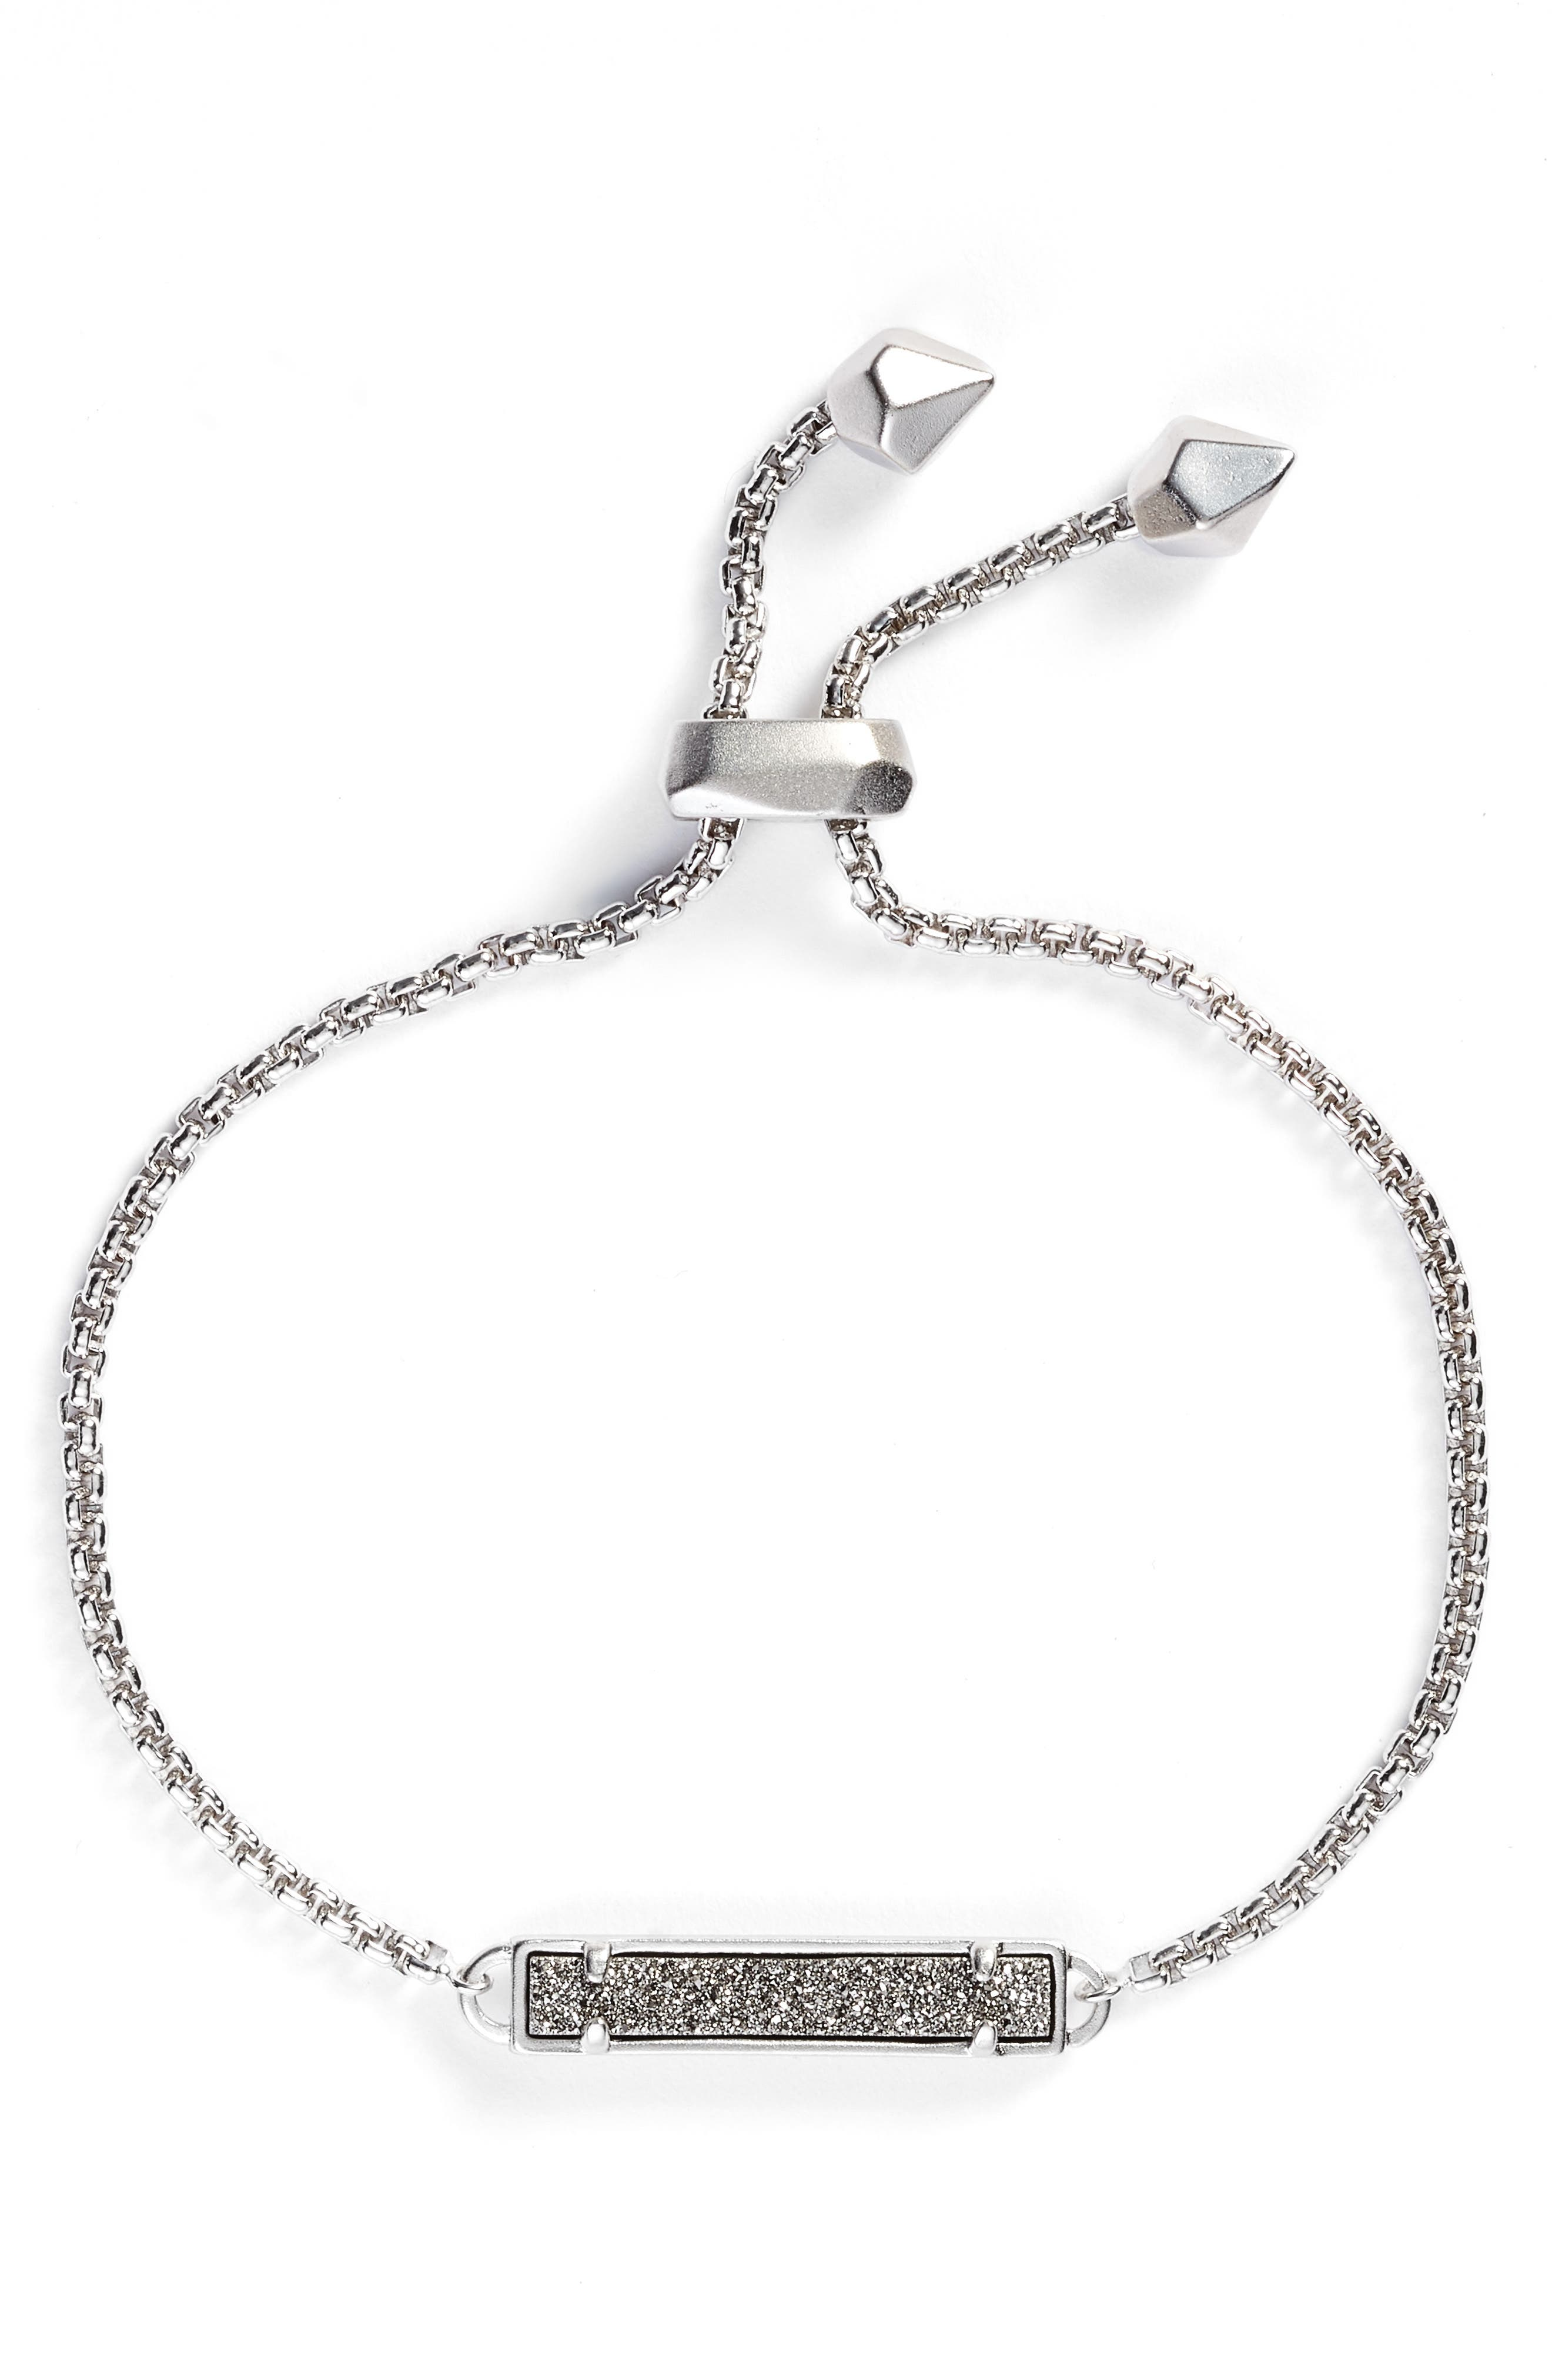 Stan Bracelet,                             Main thumbnail 1, color,                             PLATINUM DRUSY/ SILVER